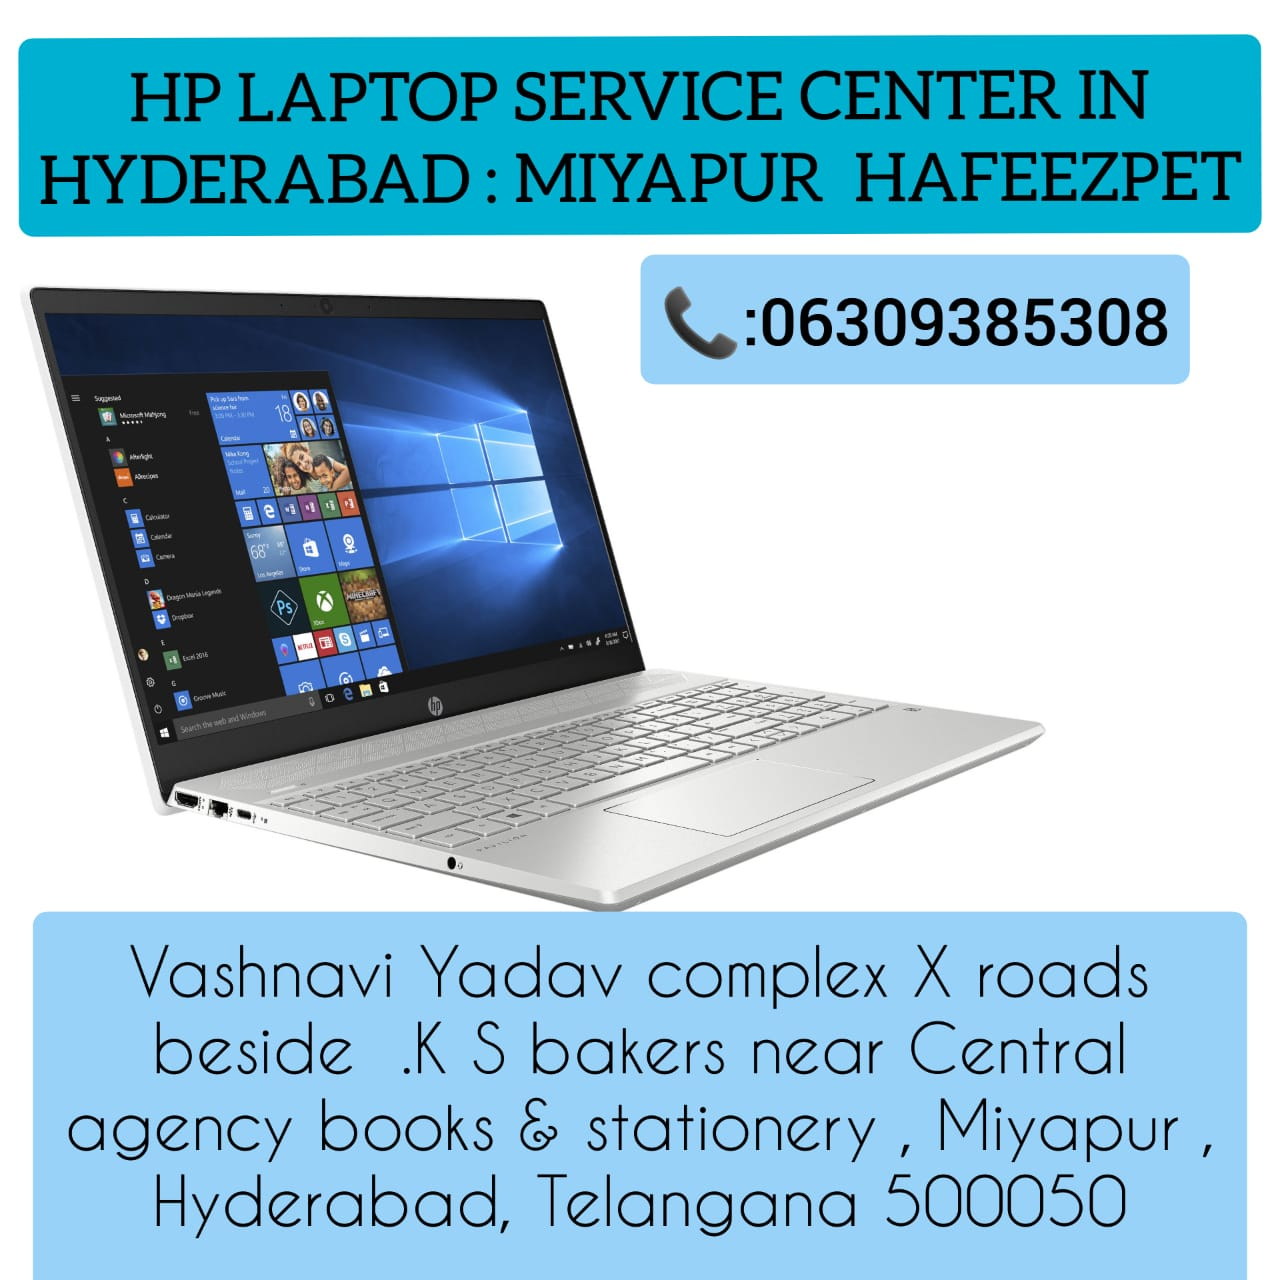 Hp Laptop Service Center In Hyderabad Miyapur 06 in Hyderabad